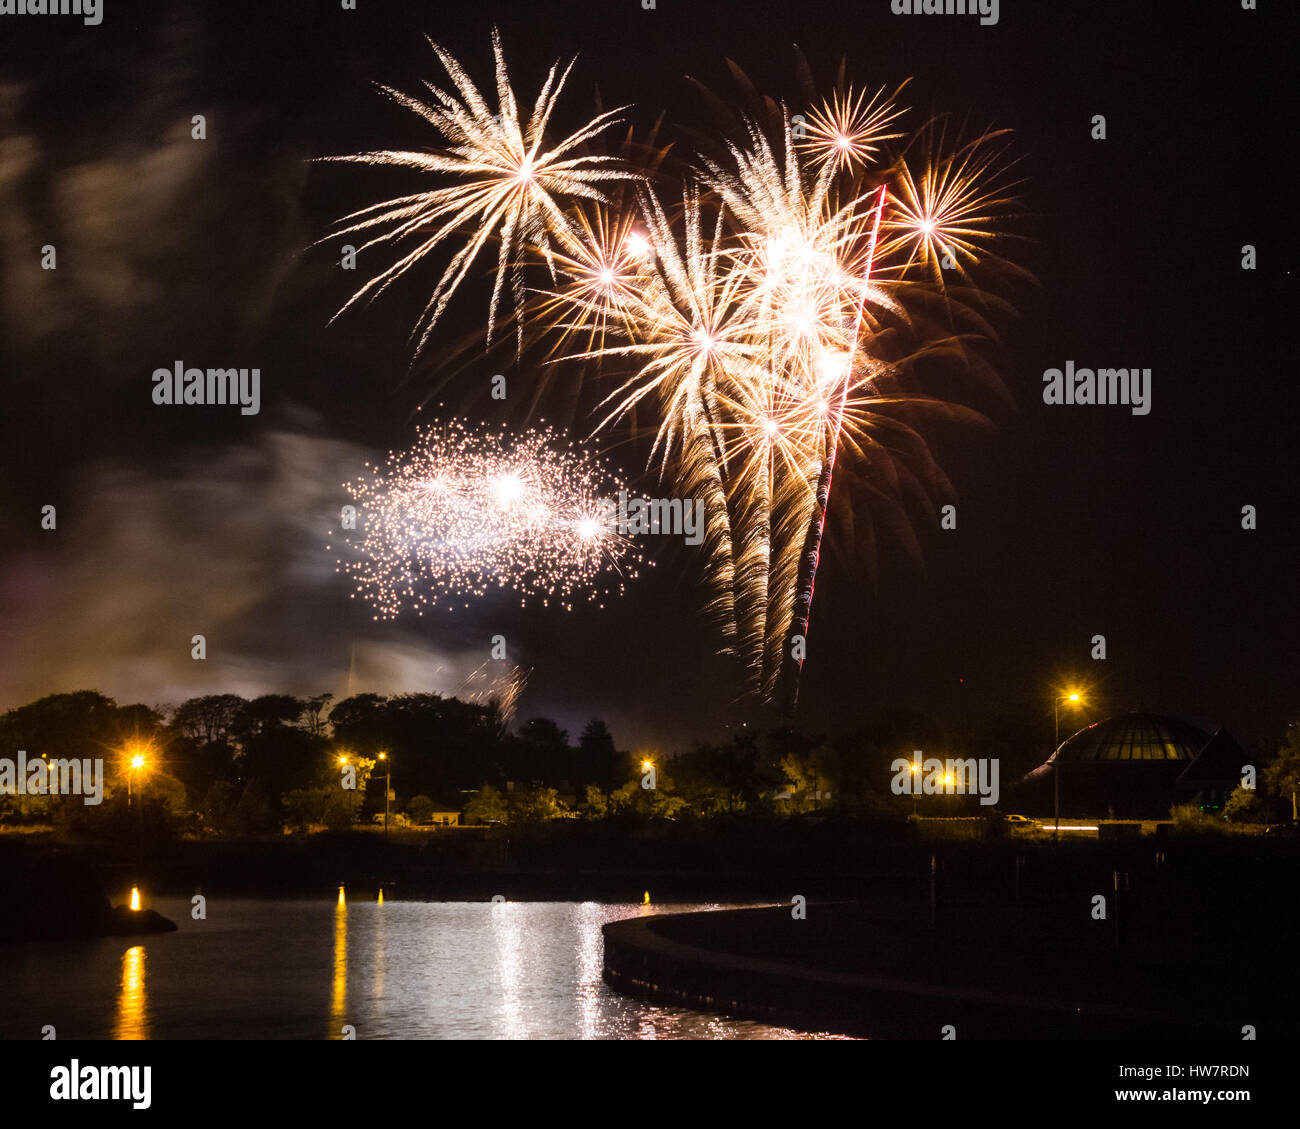 Fireworks at Rose of Tralee Festival in Tralee, County Kerry, Ireland - Stock Image